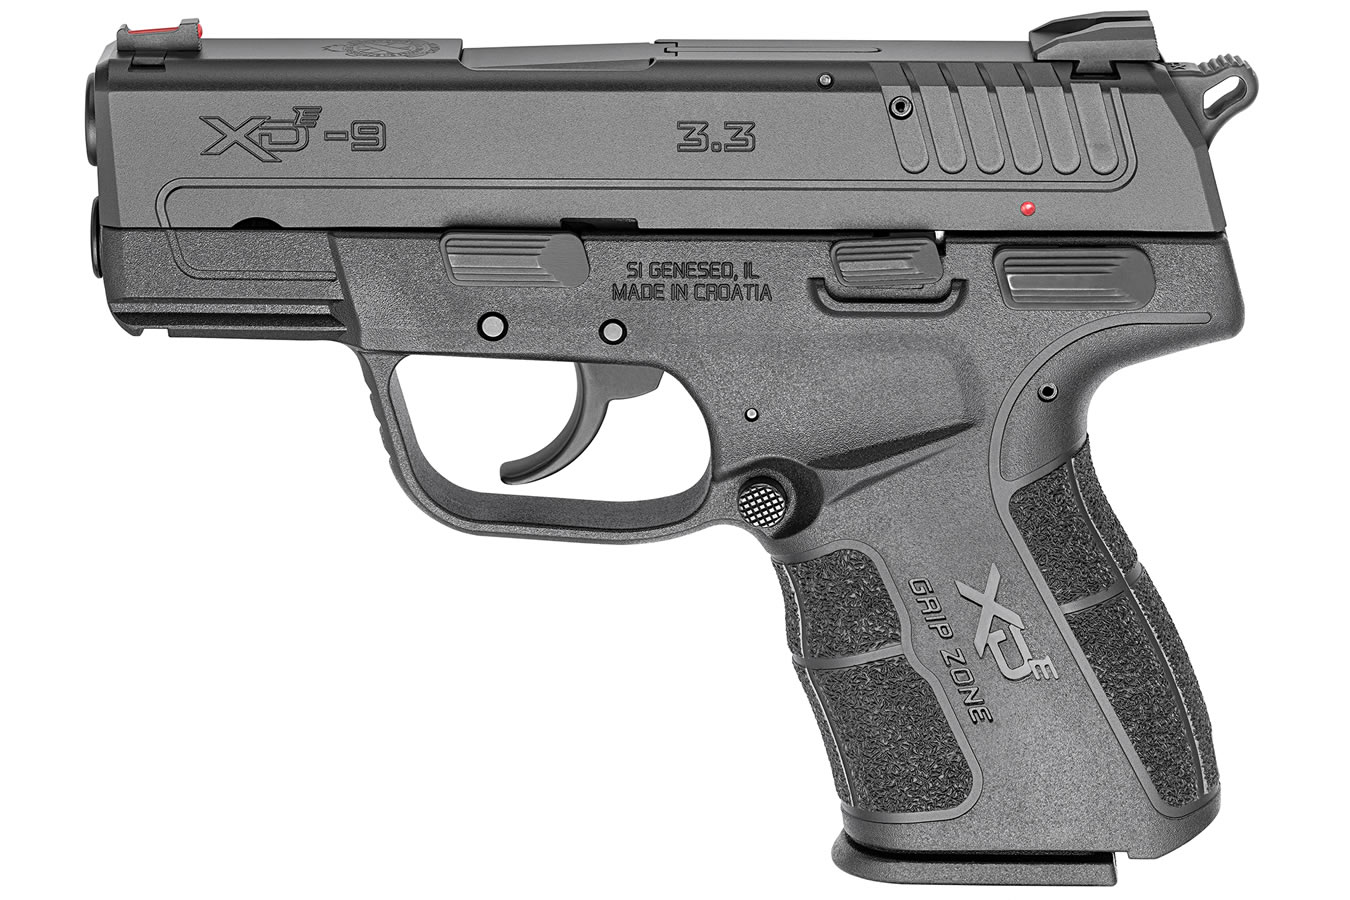 XDE 9MM 3.3 INCH BLACK PISTOL